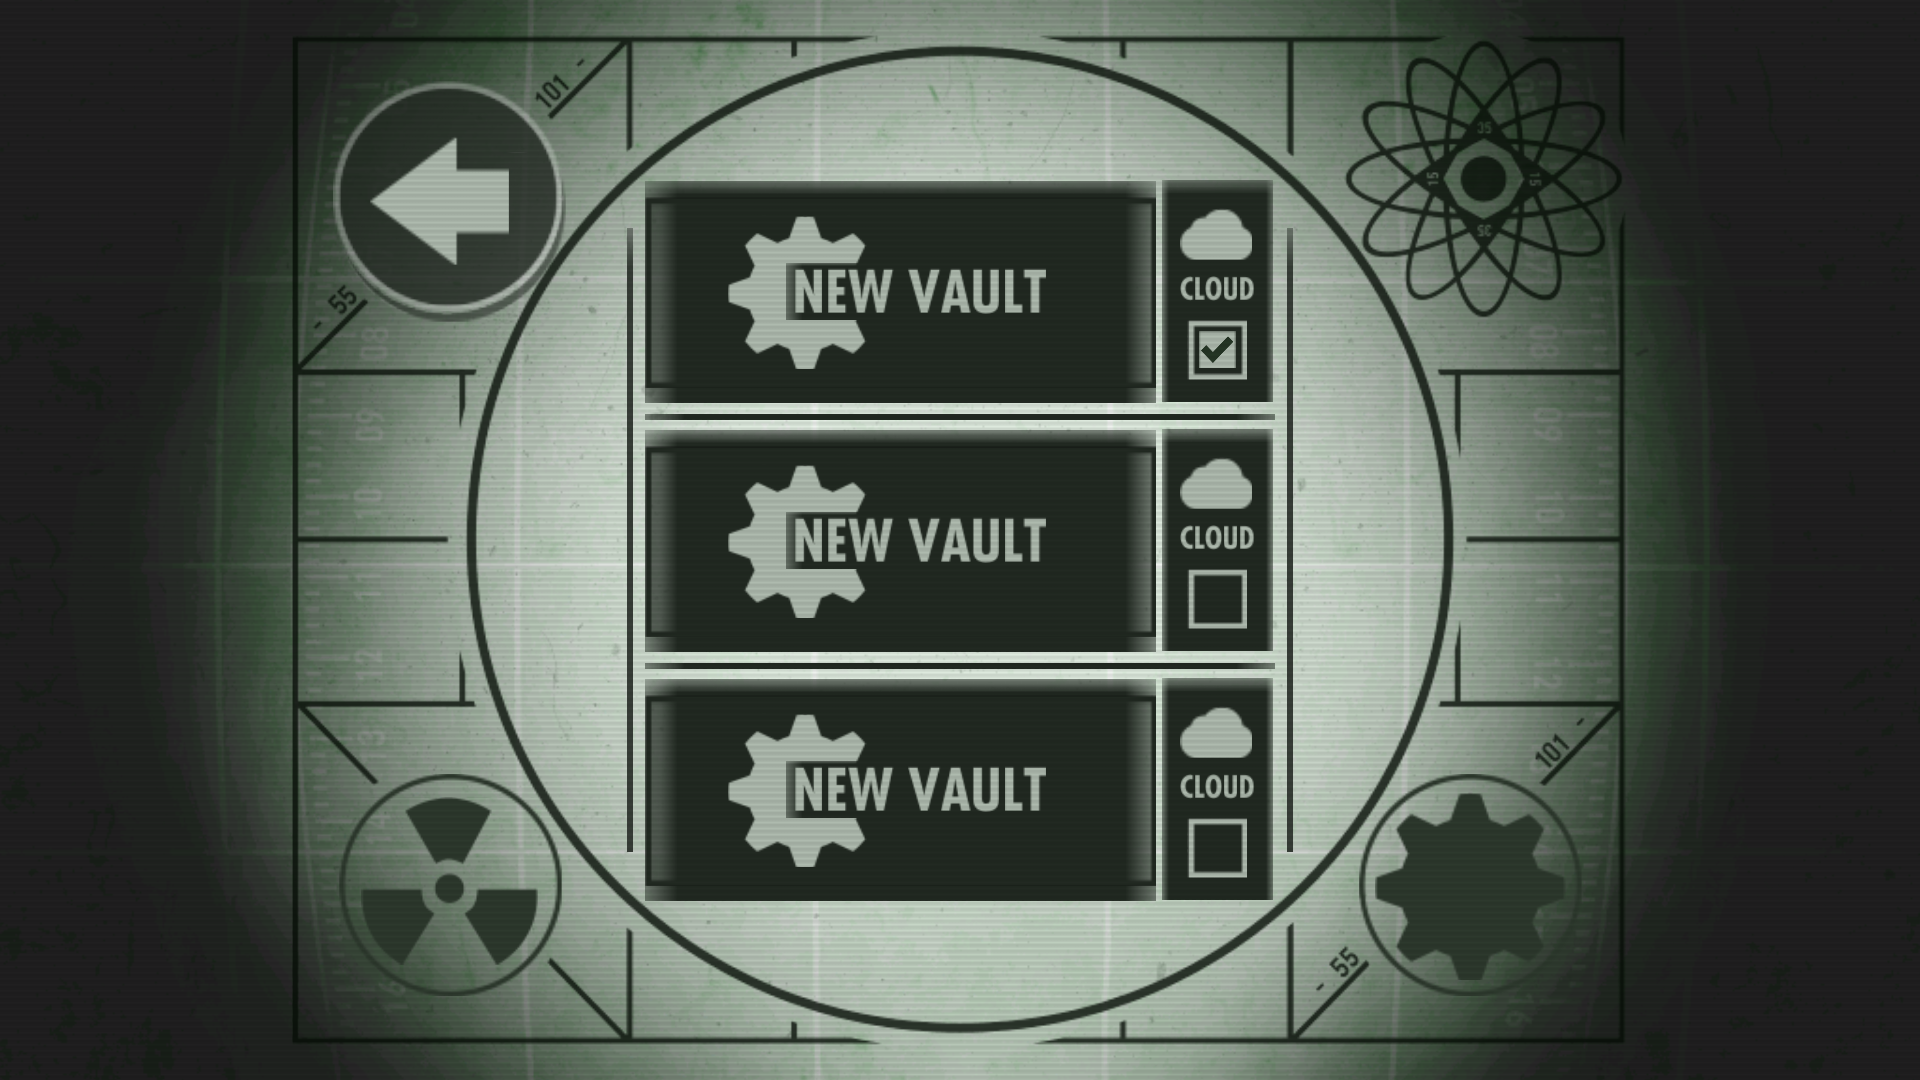 Bethesda support for Cloud vault app